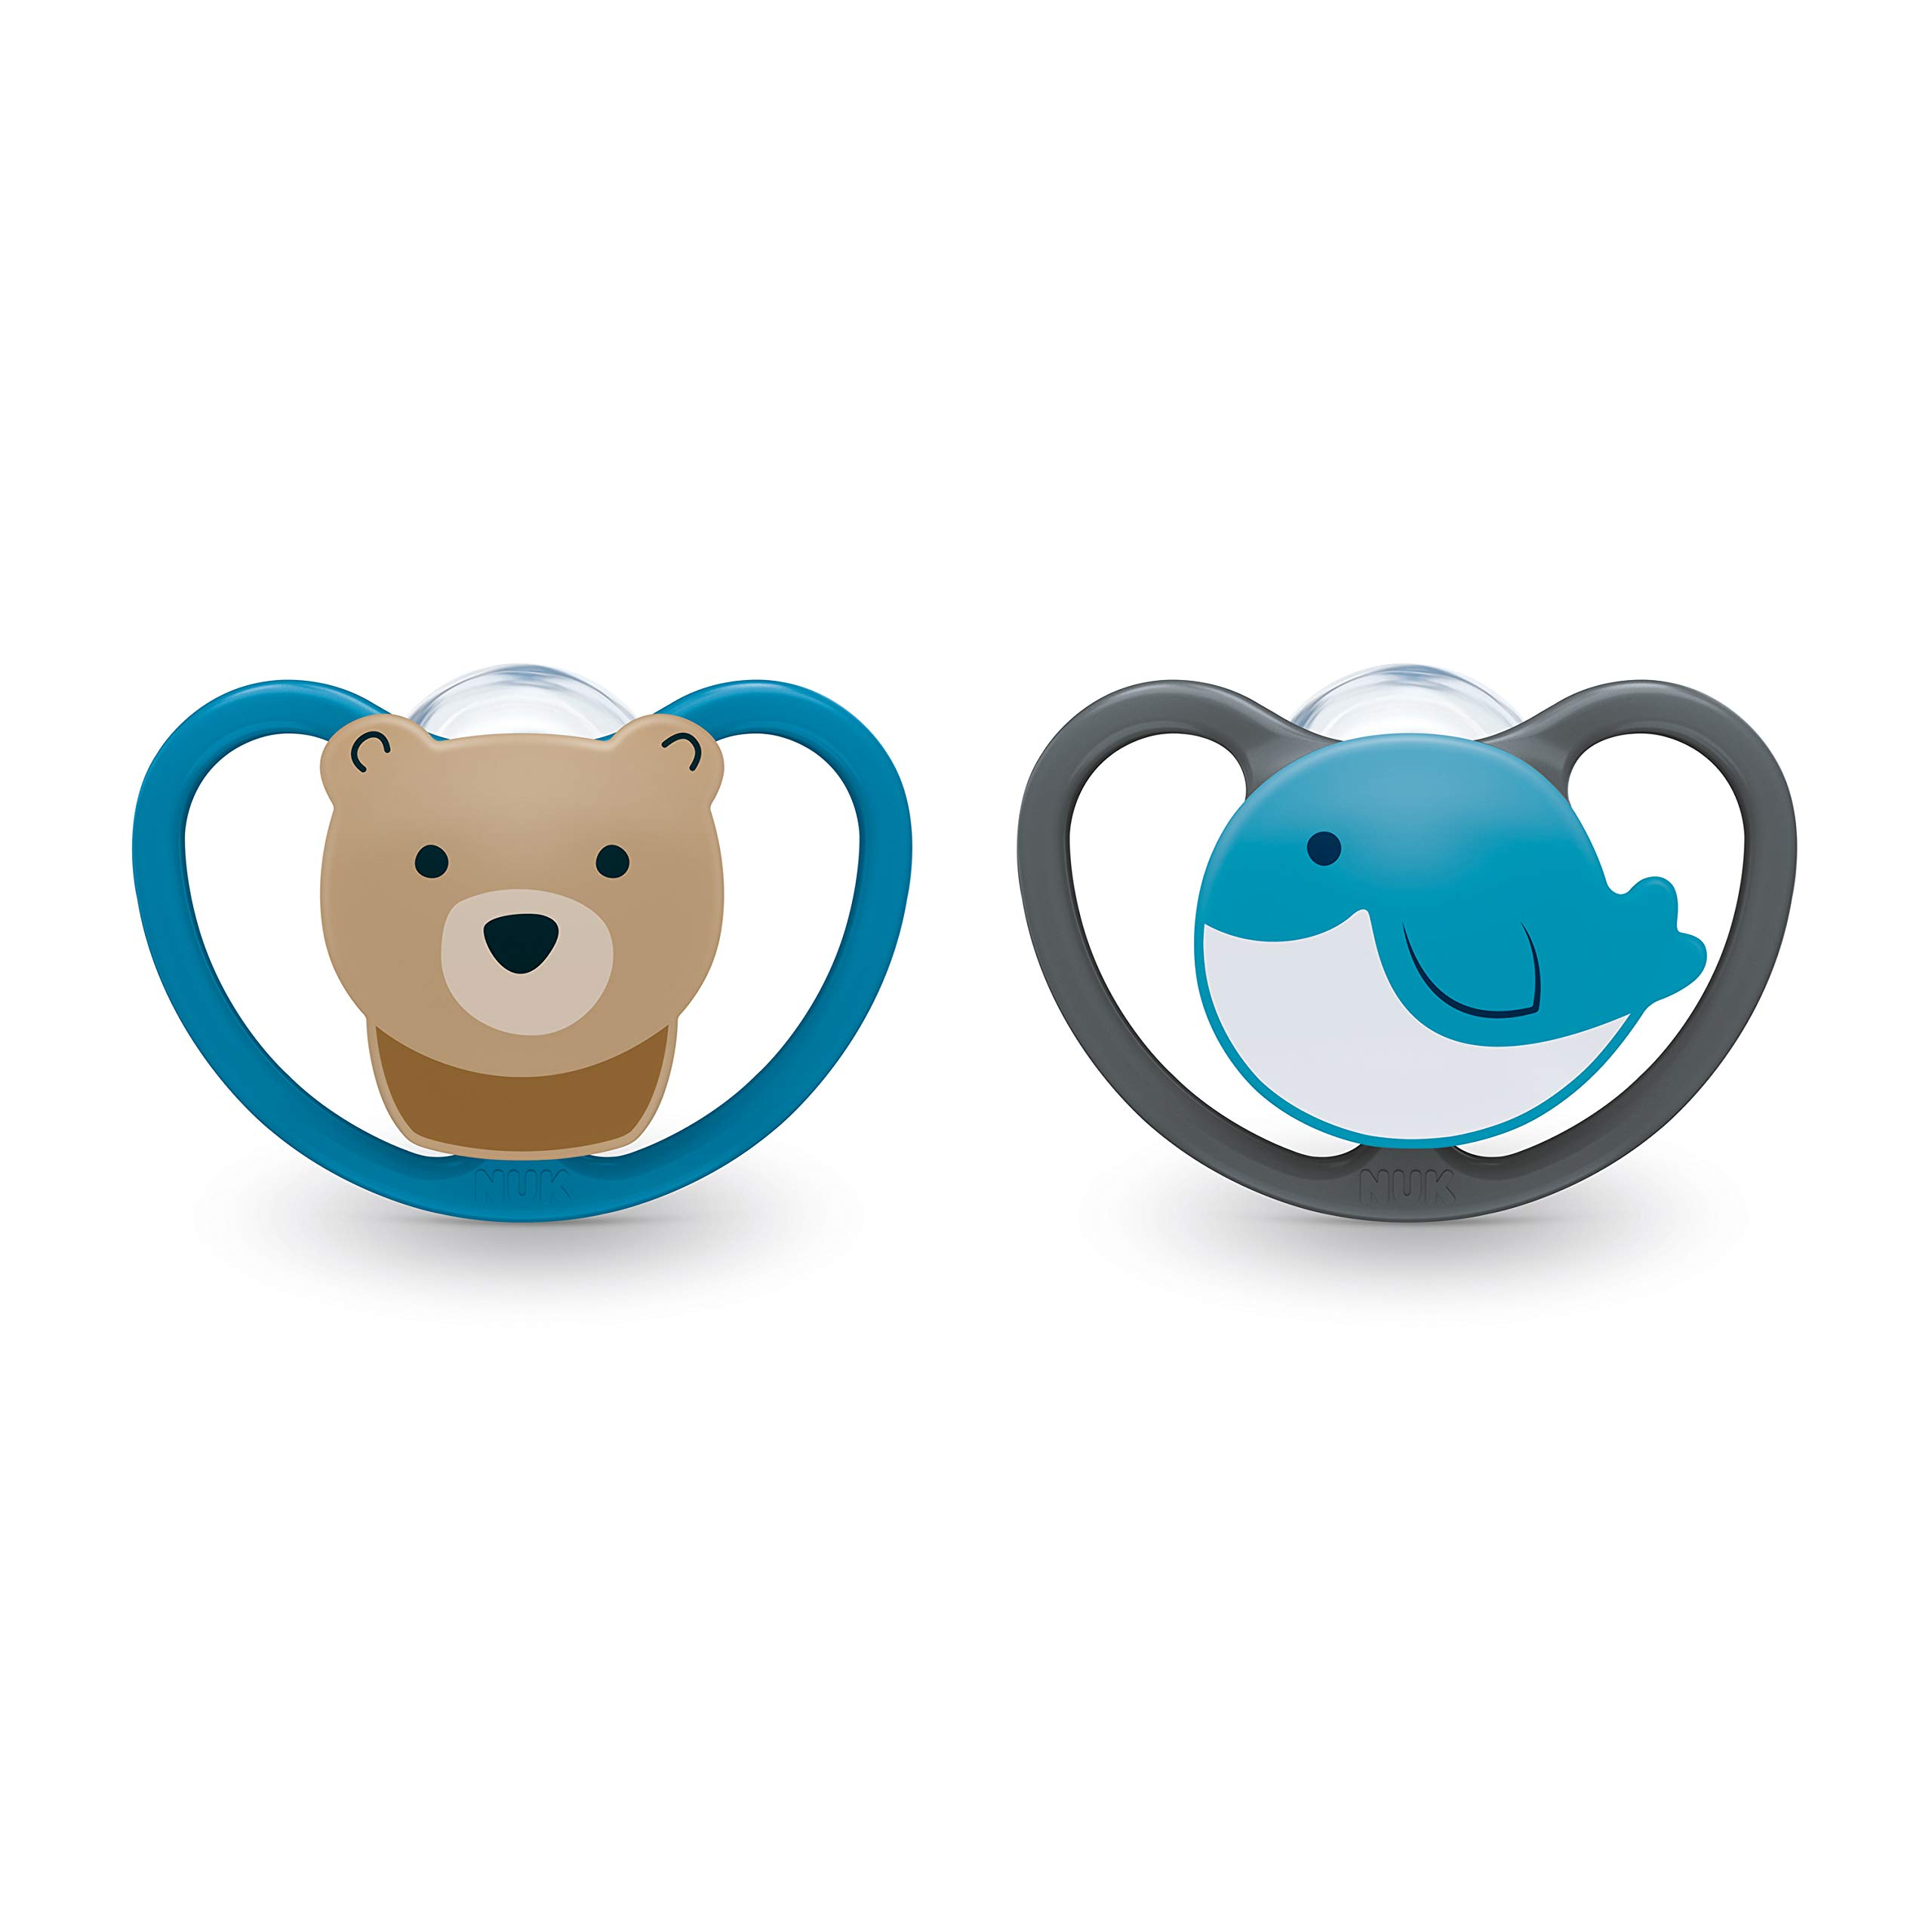 NUK Space Orthodontic Pacifier, 0-6 Months (2 Count)